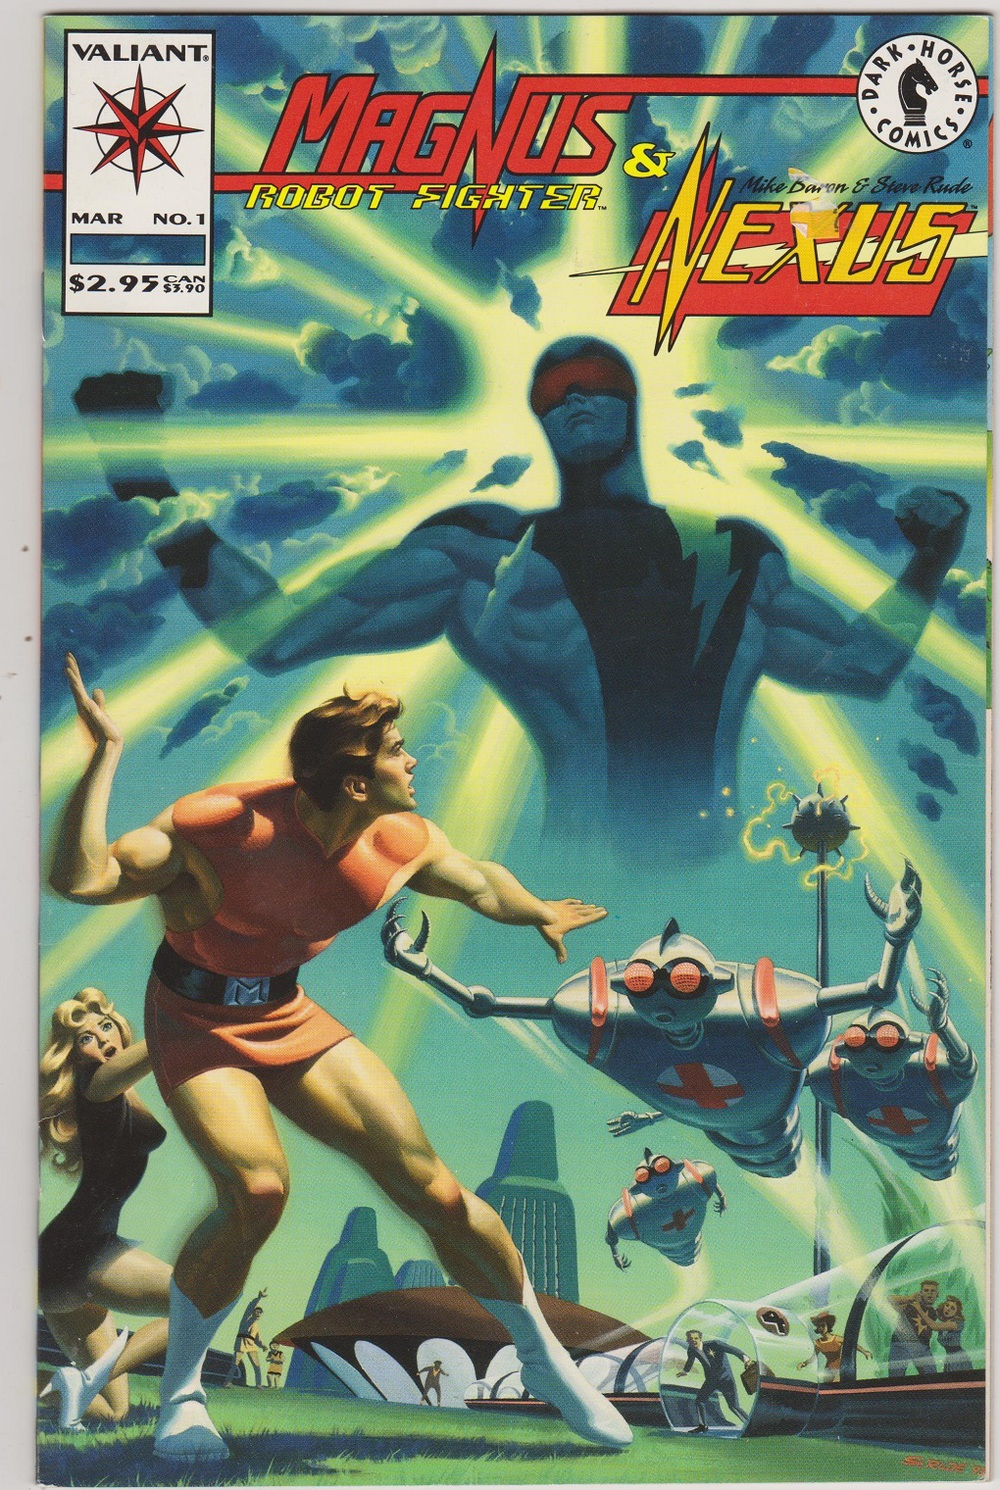 asteve rude 001.jpg